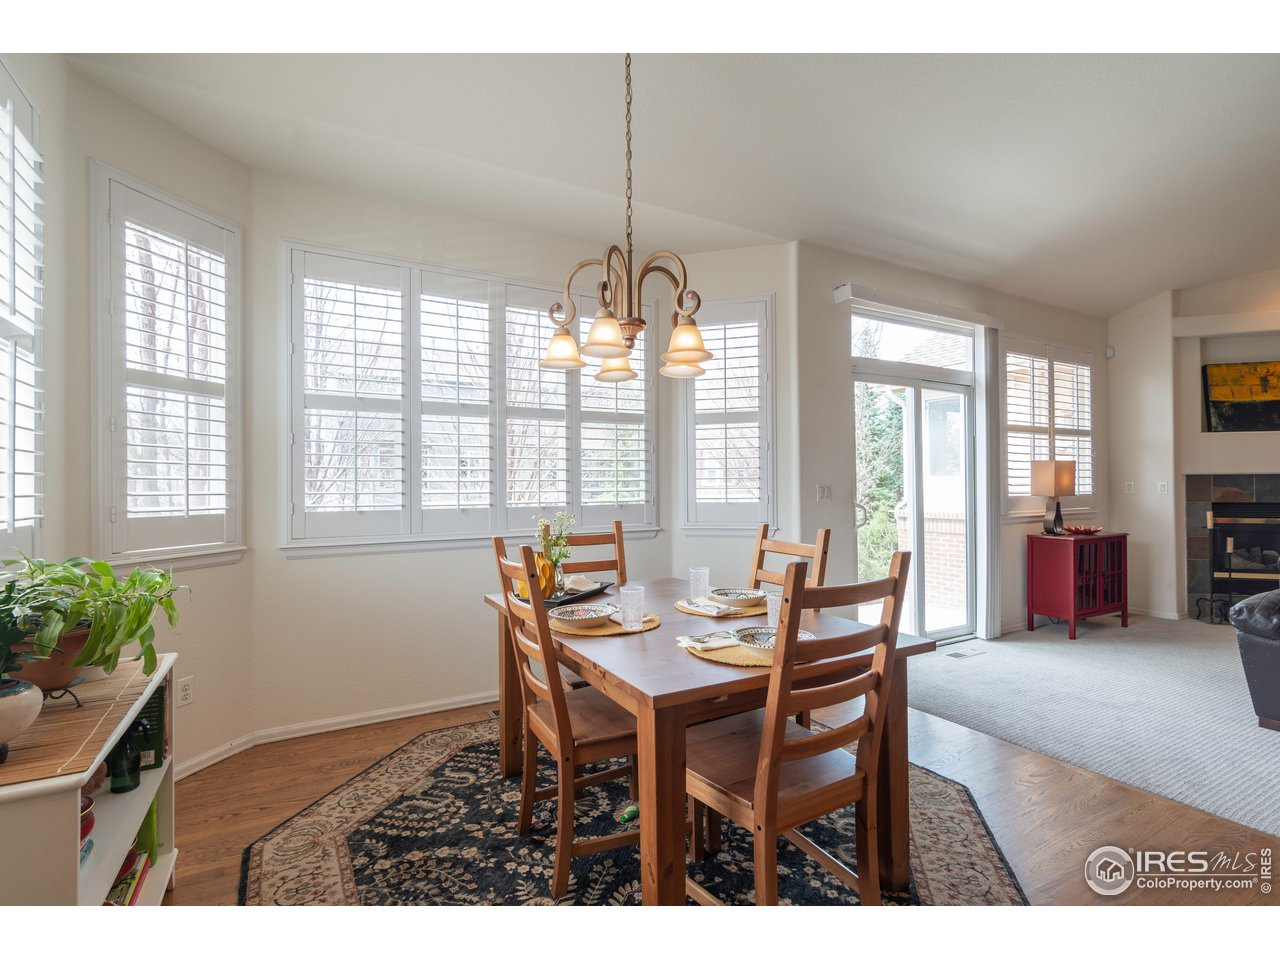 Dining Room is Generous and has so many nice windows!